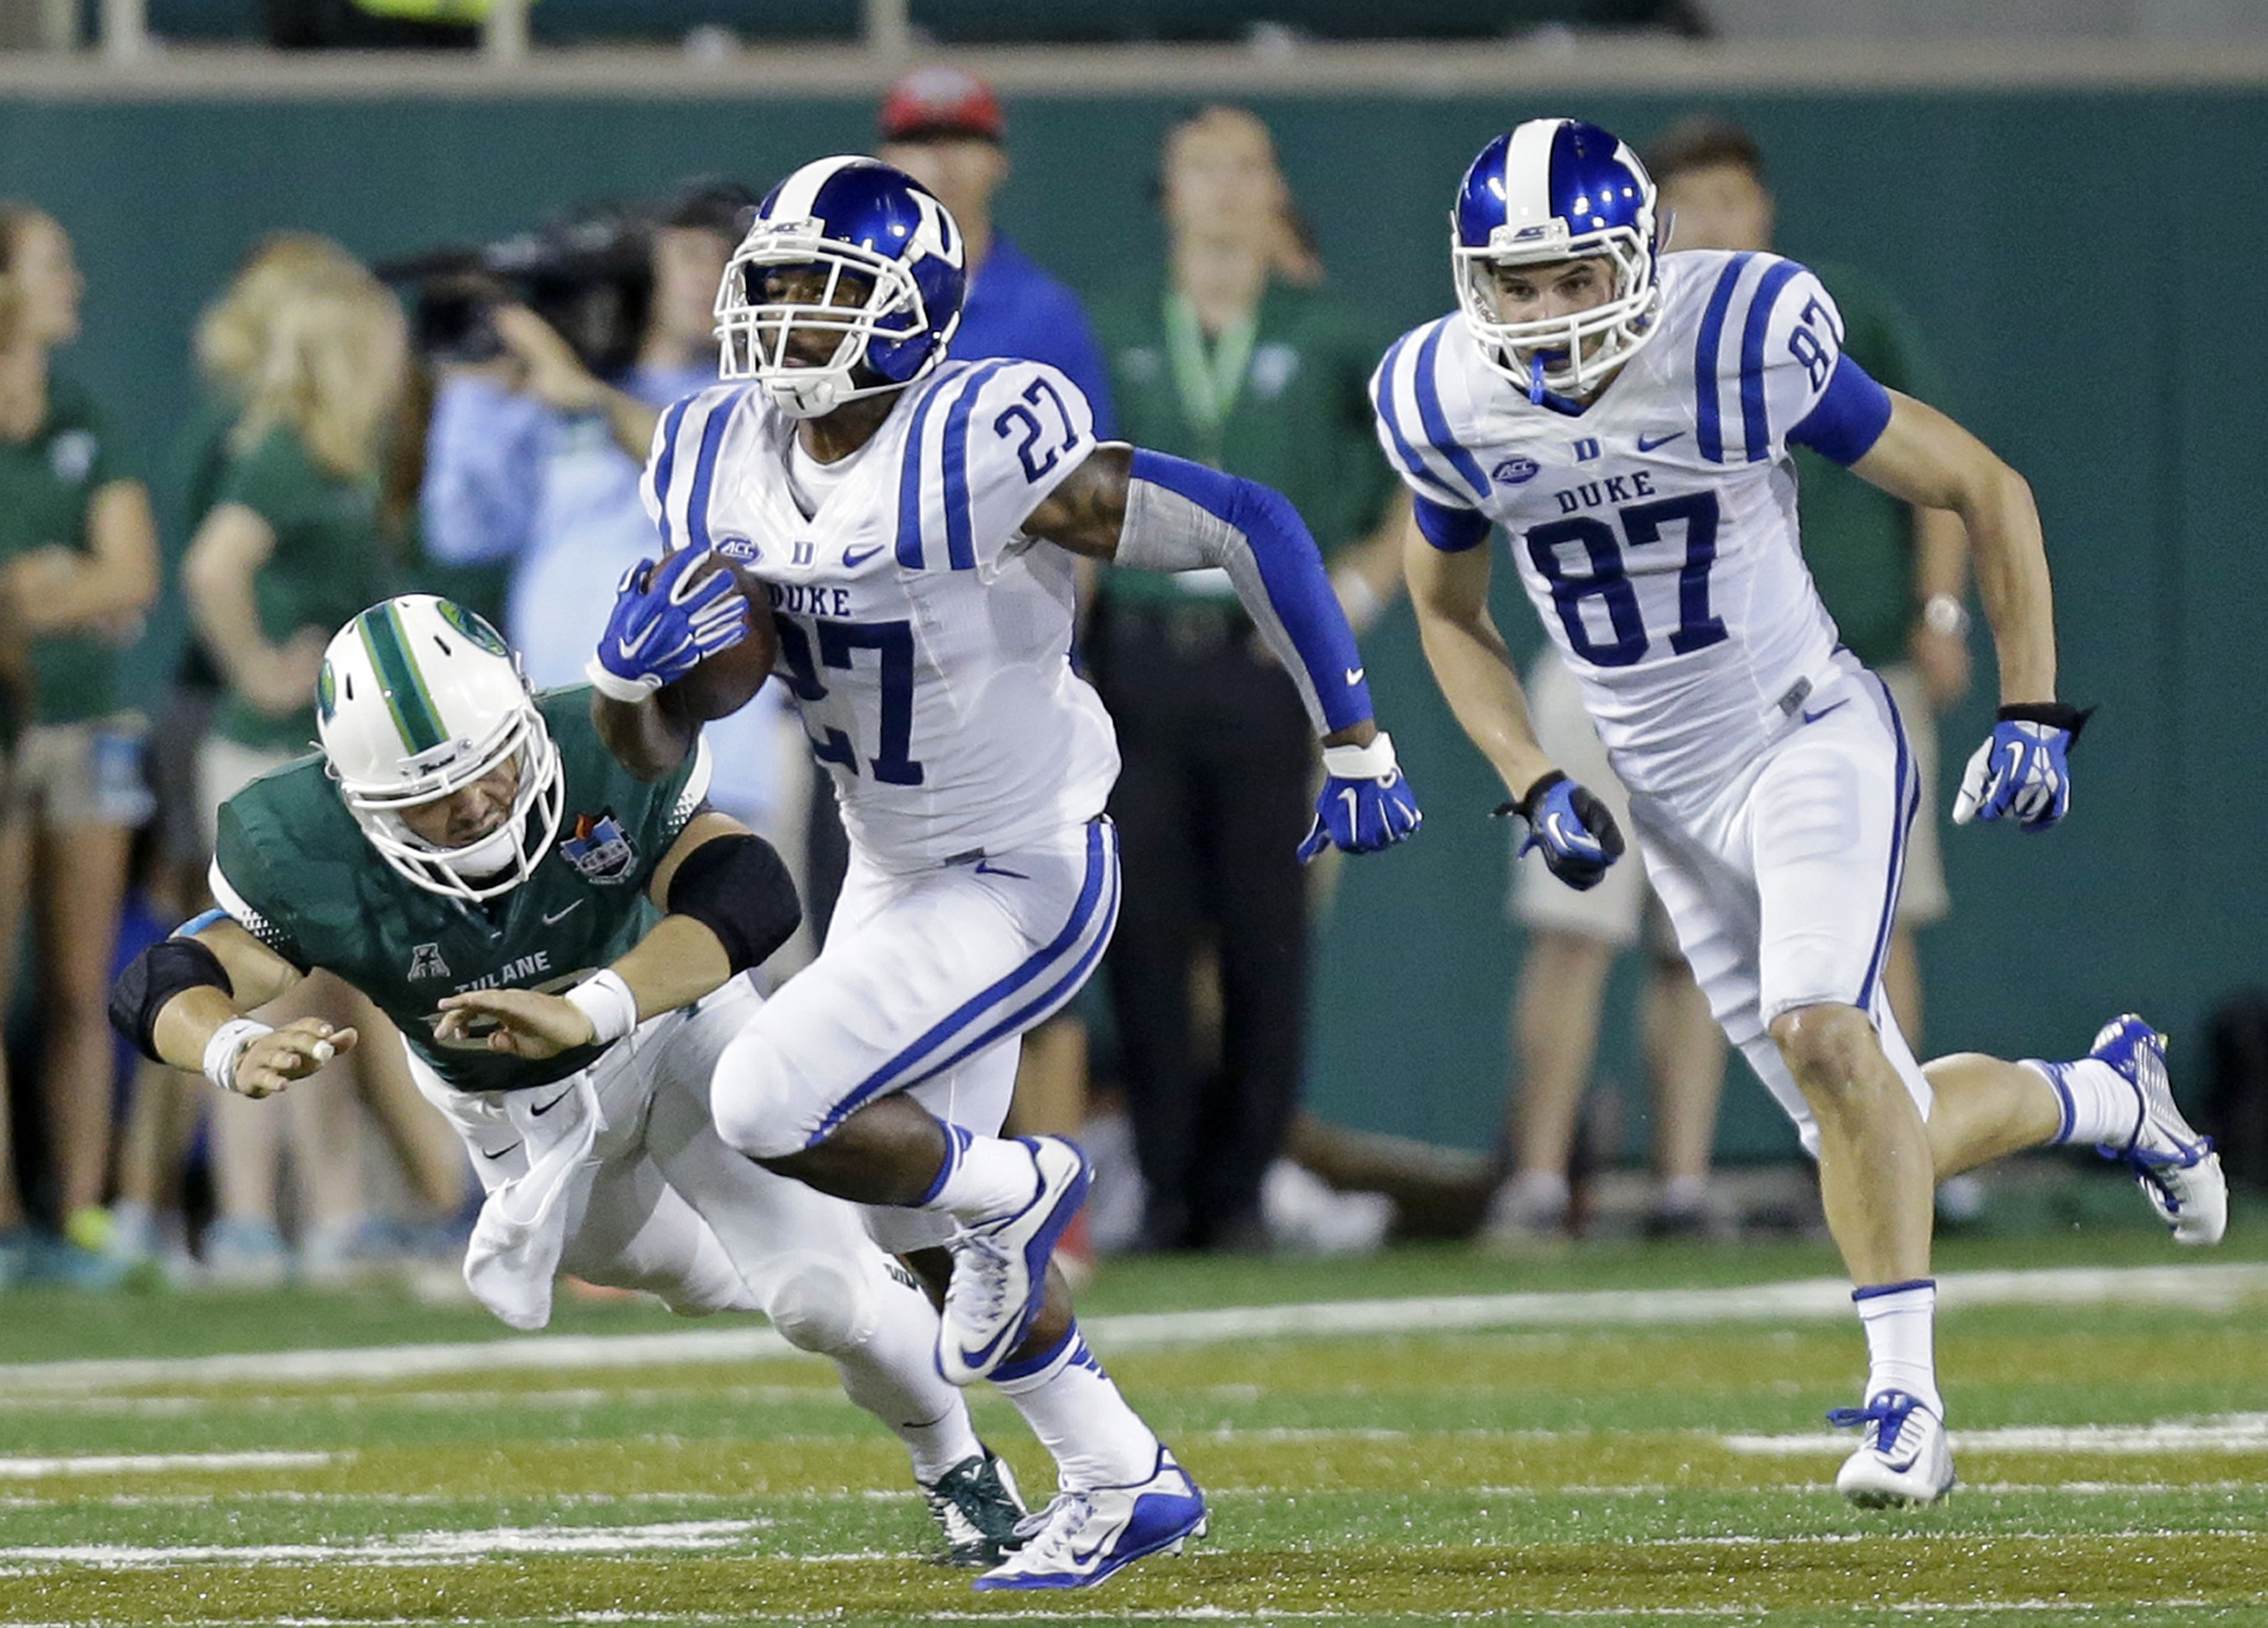 Duke safety DeVon Edwards (27) carries past Tulane's Marshall Wadleigh on a 95-yard kickoff return for a touchdown in the second half of an NCAA college football game in New Orleans, Thursday, Sept. 3, 2015. At right is Duke's Max McCaffrey (87). (AP Phot